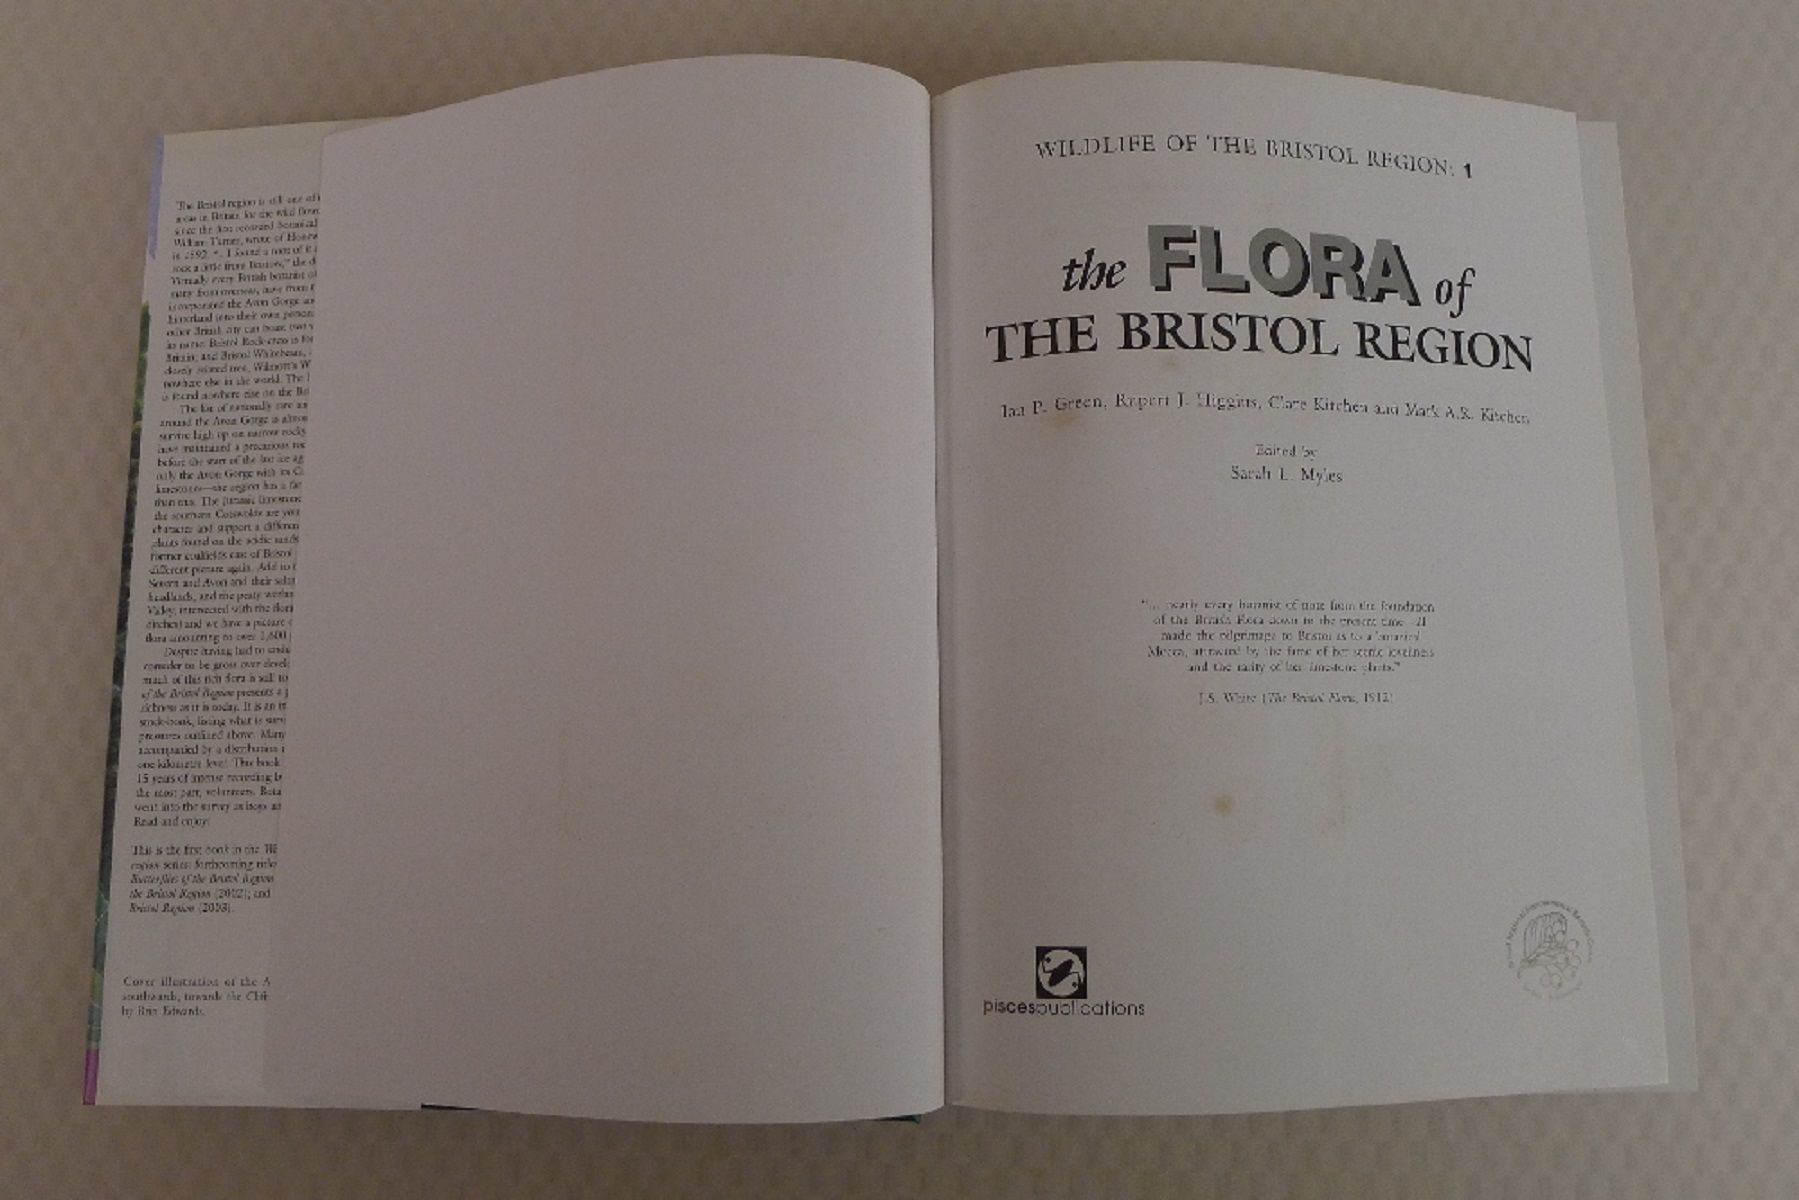 2 Books The Flora of The Bristol Region by Ian Green, Rupert Higgins, Clare Kitchen and Mark Kitchen - Image 4 of 8